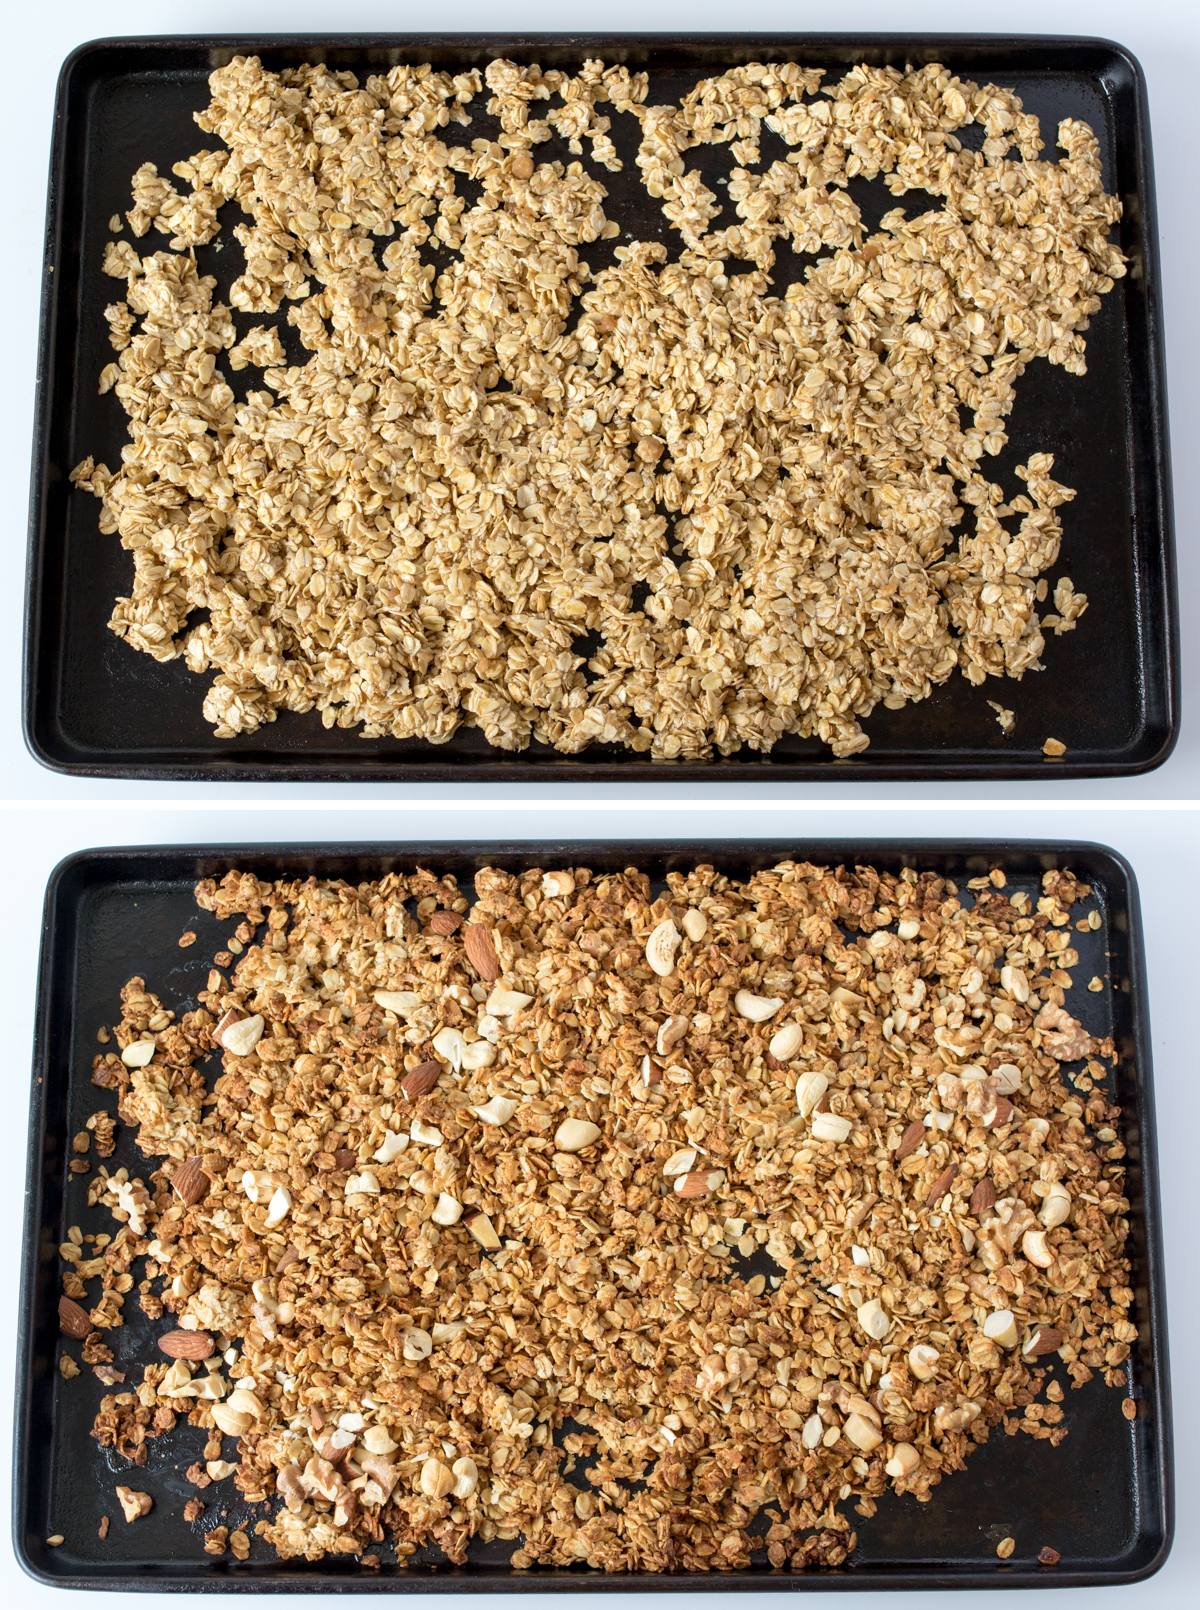 Berry nut granola step2 collage